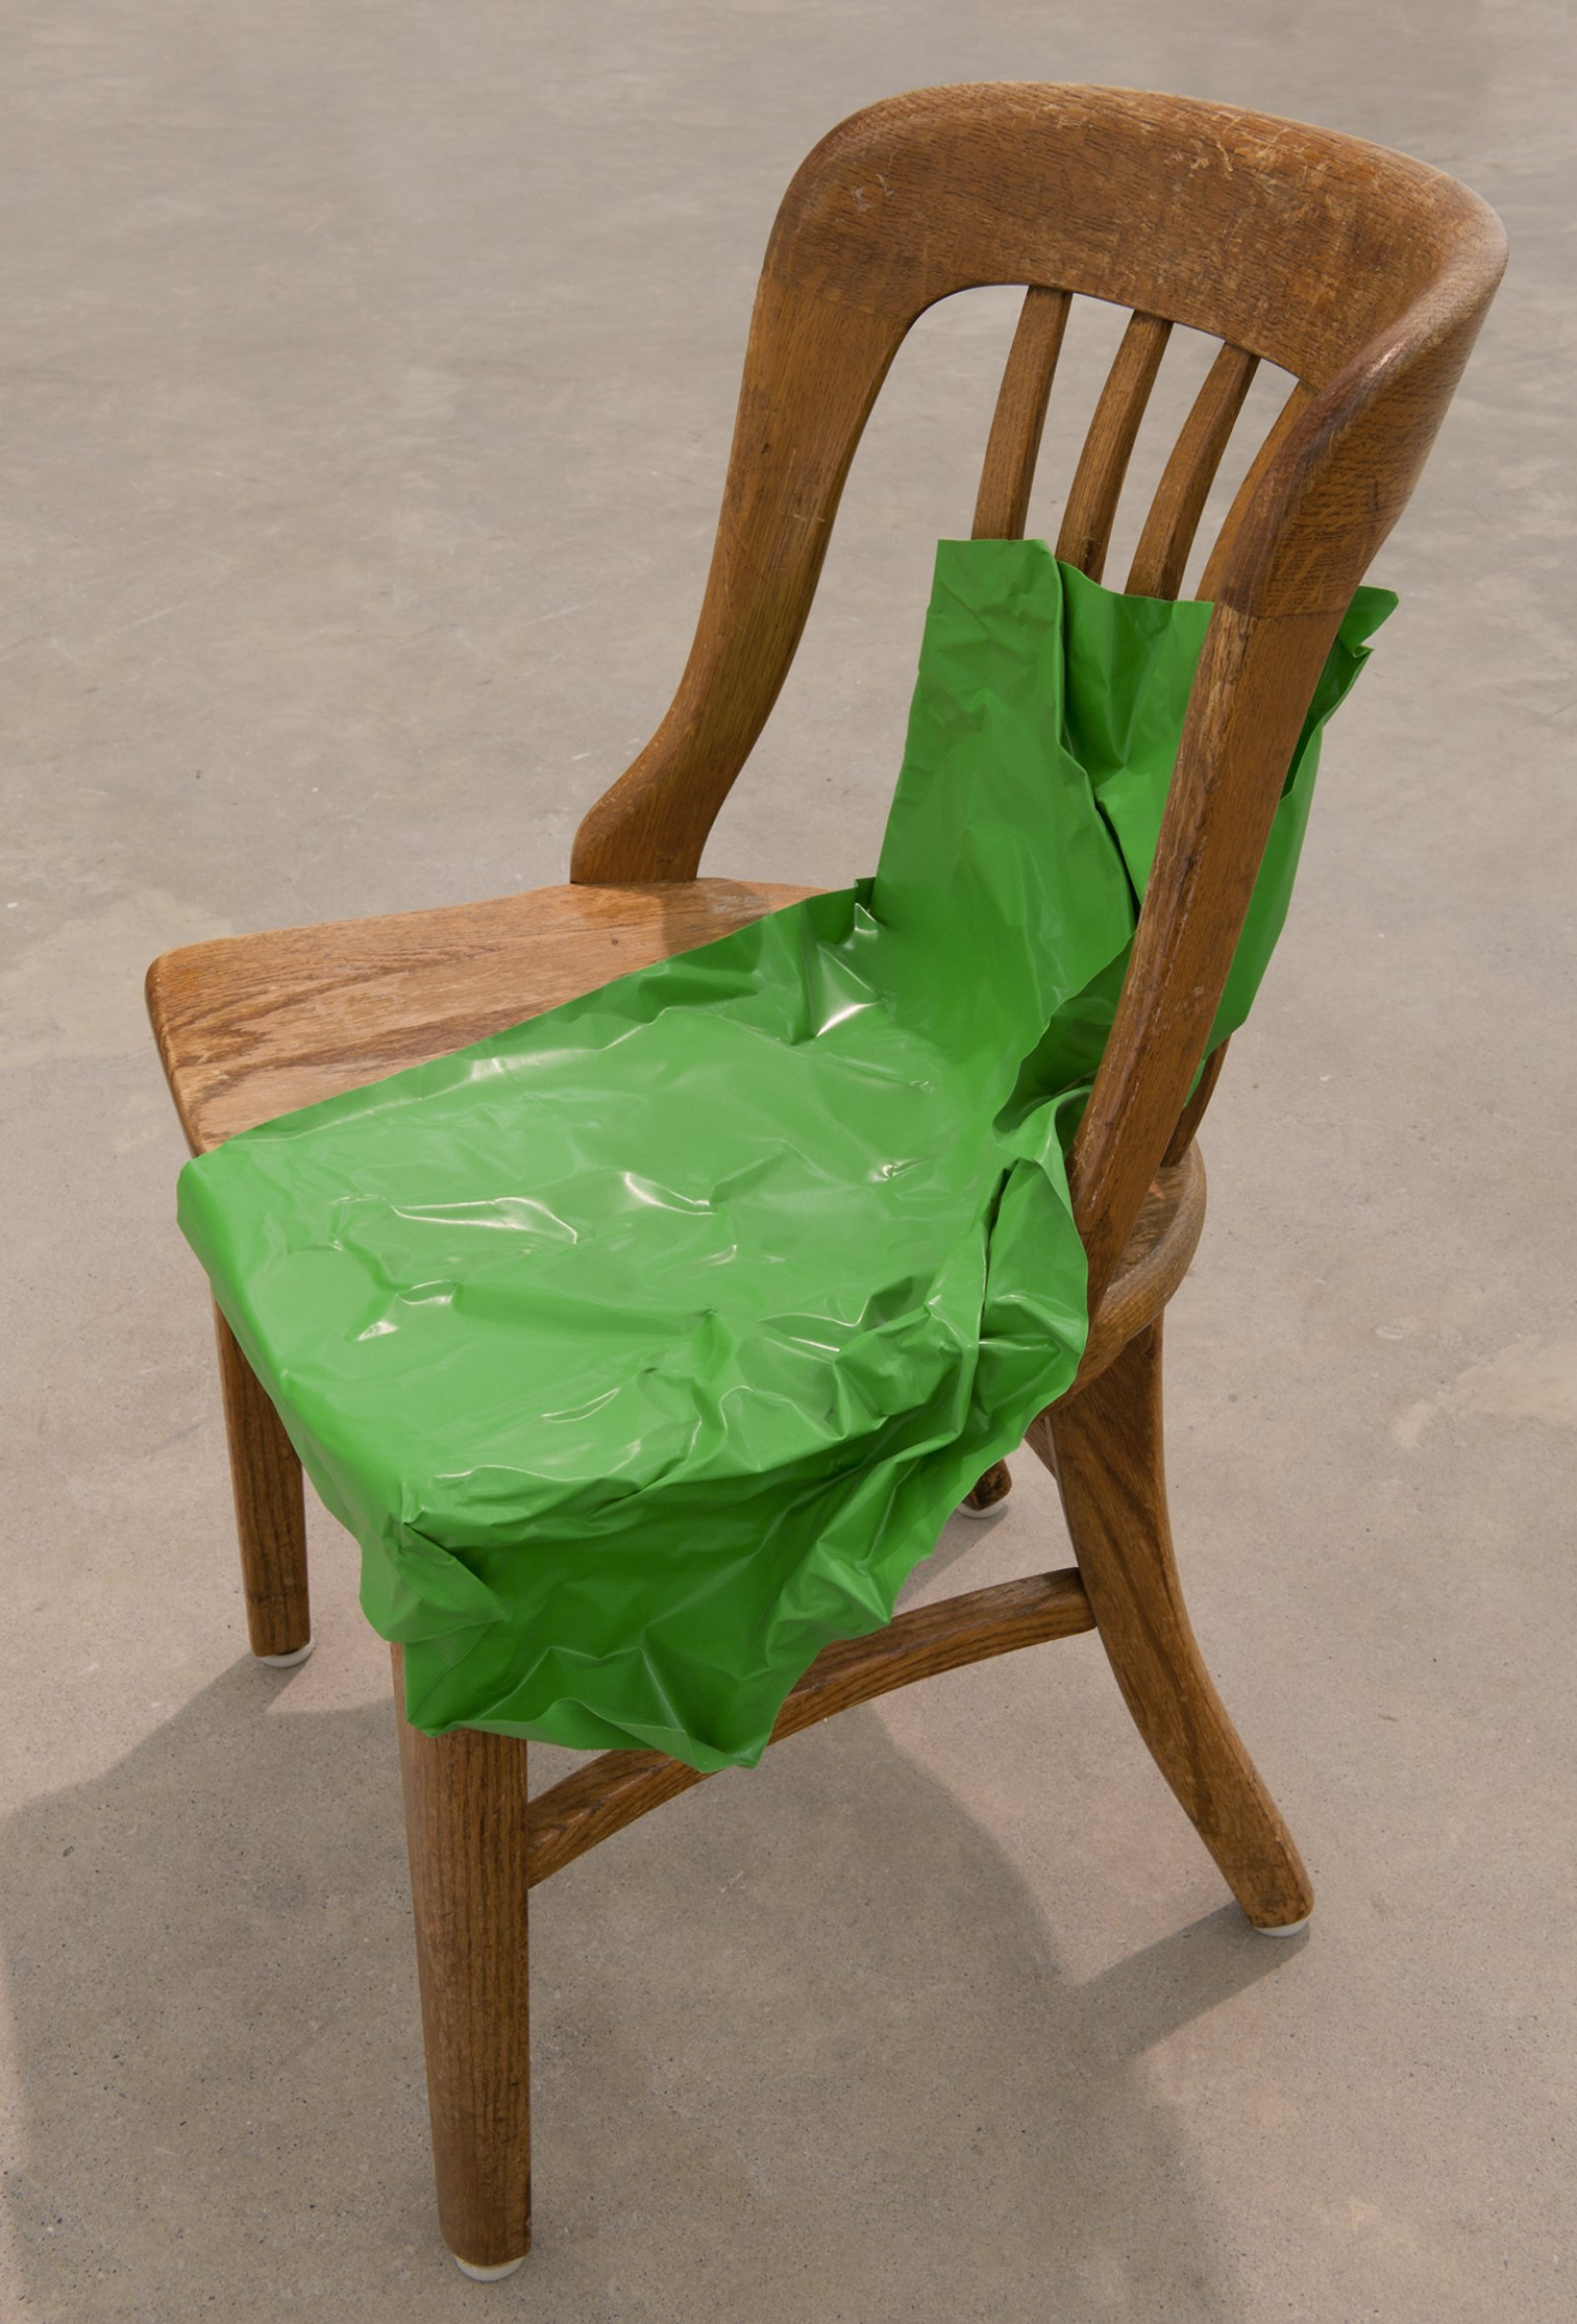 Judy Radul, Object Analysis Spectator Poem (Chair), 2012, painted copper, chair, colour photograph, chair: 33 x 18 x 18 in. (84 x 46 x 44 cm), photograph: 8 x 12 x 3 in. (20 x 29 x 8 cm) by Judy Radul